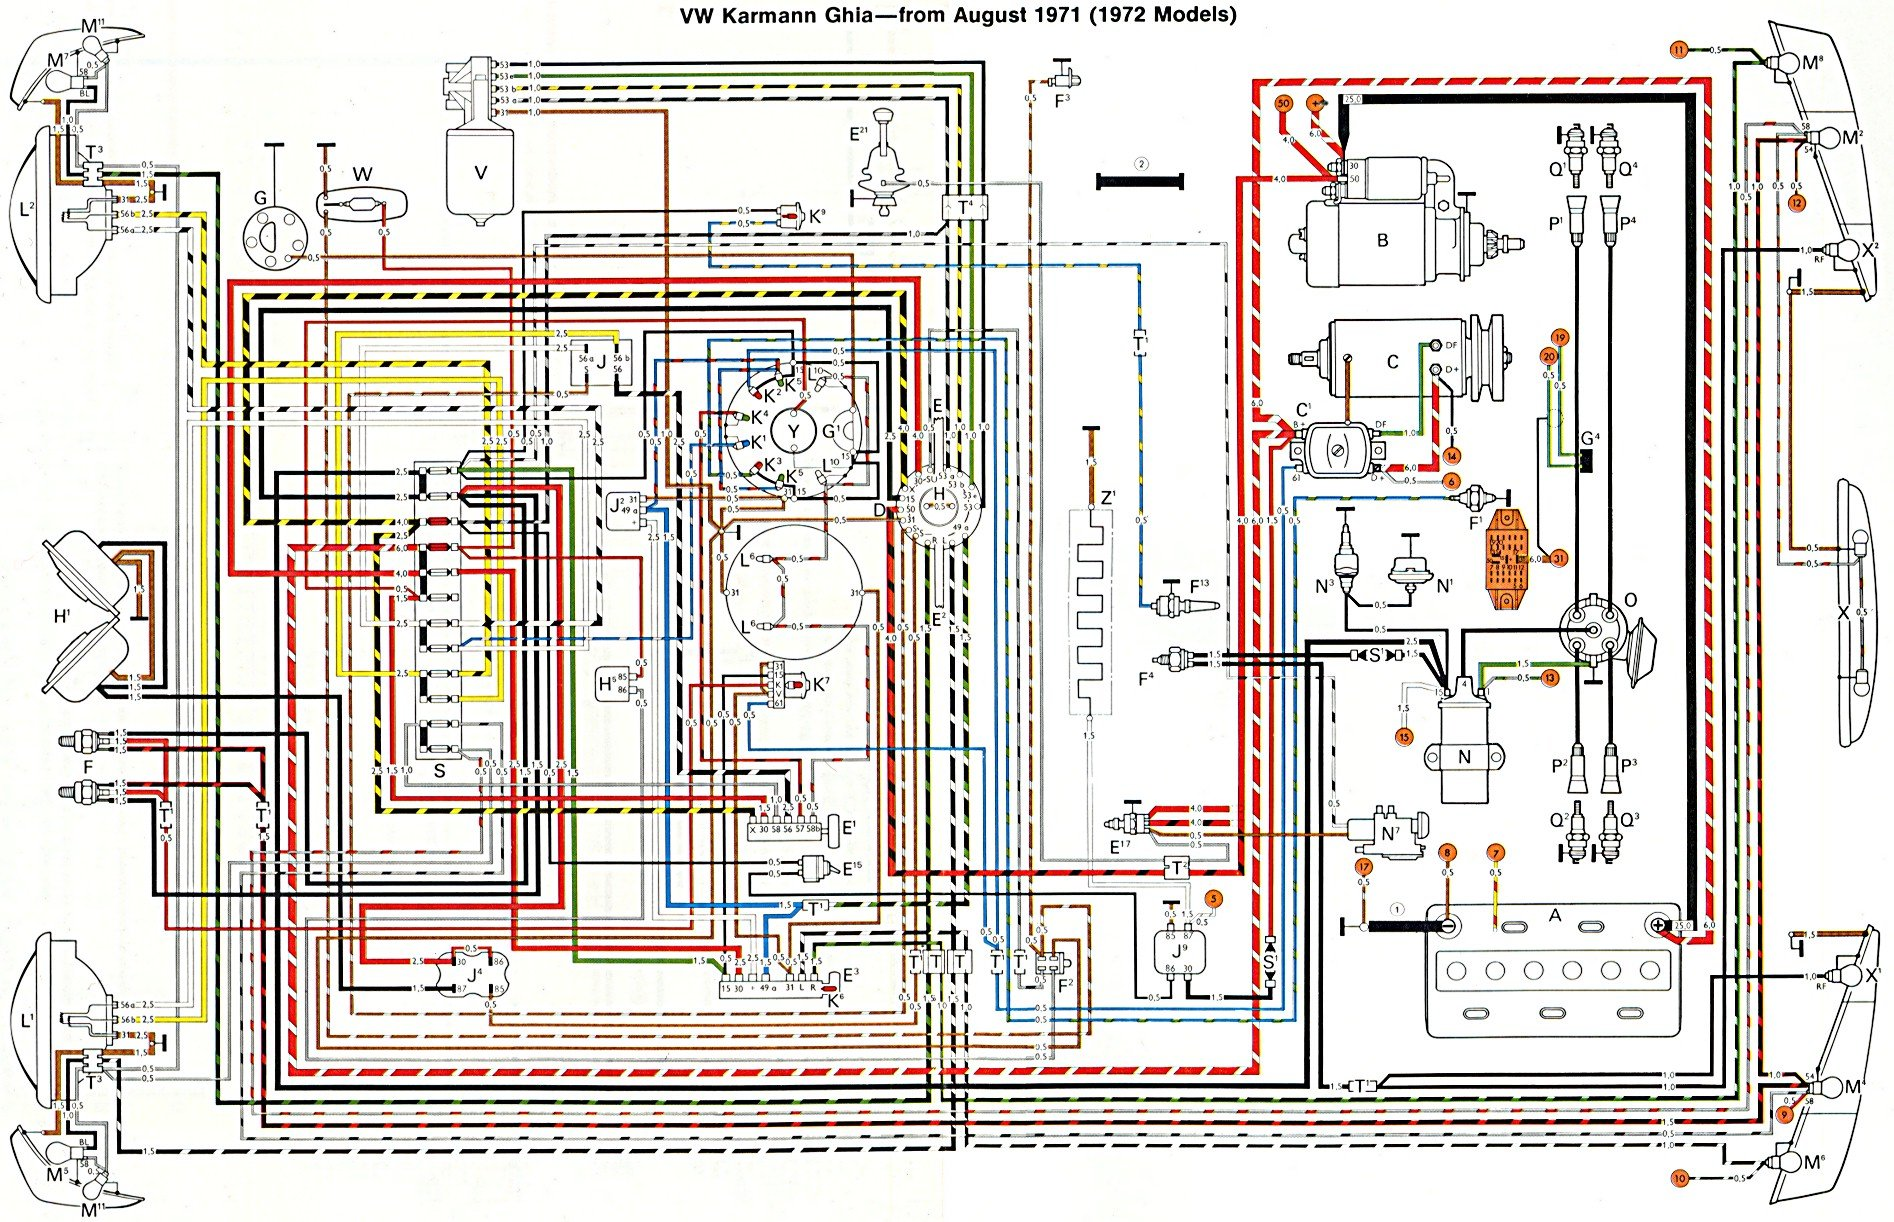 com karmann ghia wiring diagrams 1972 usa